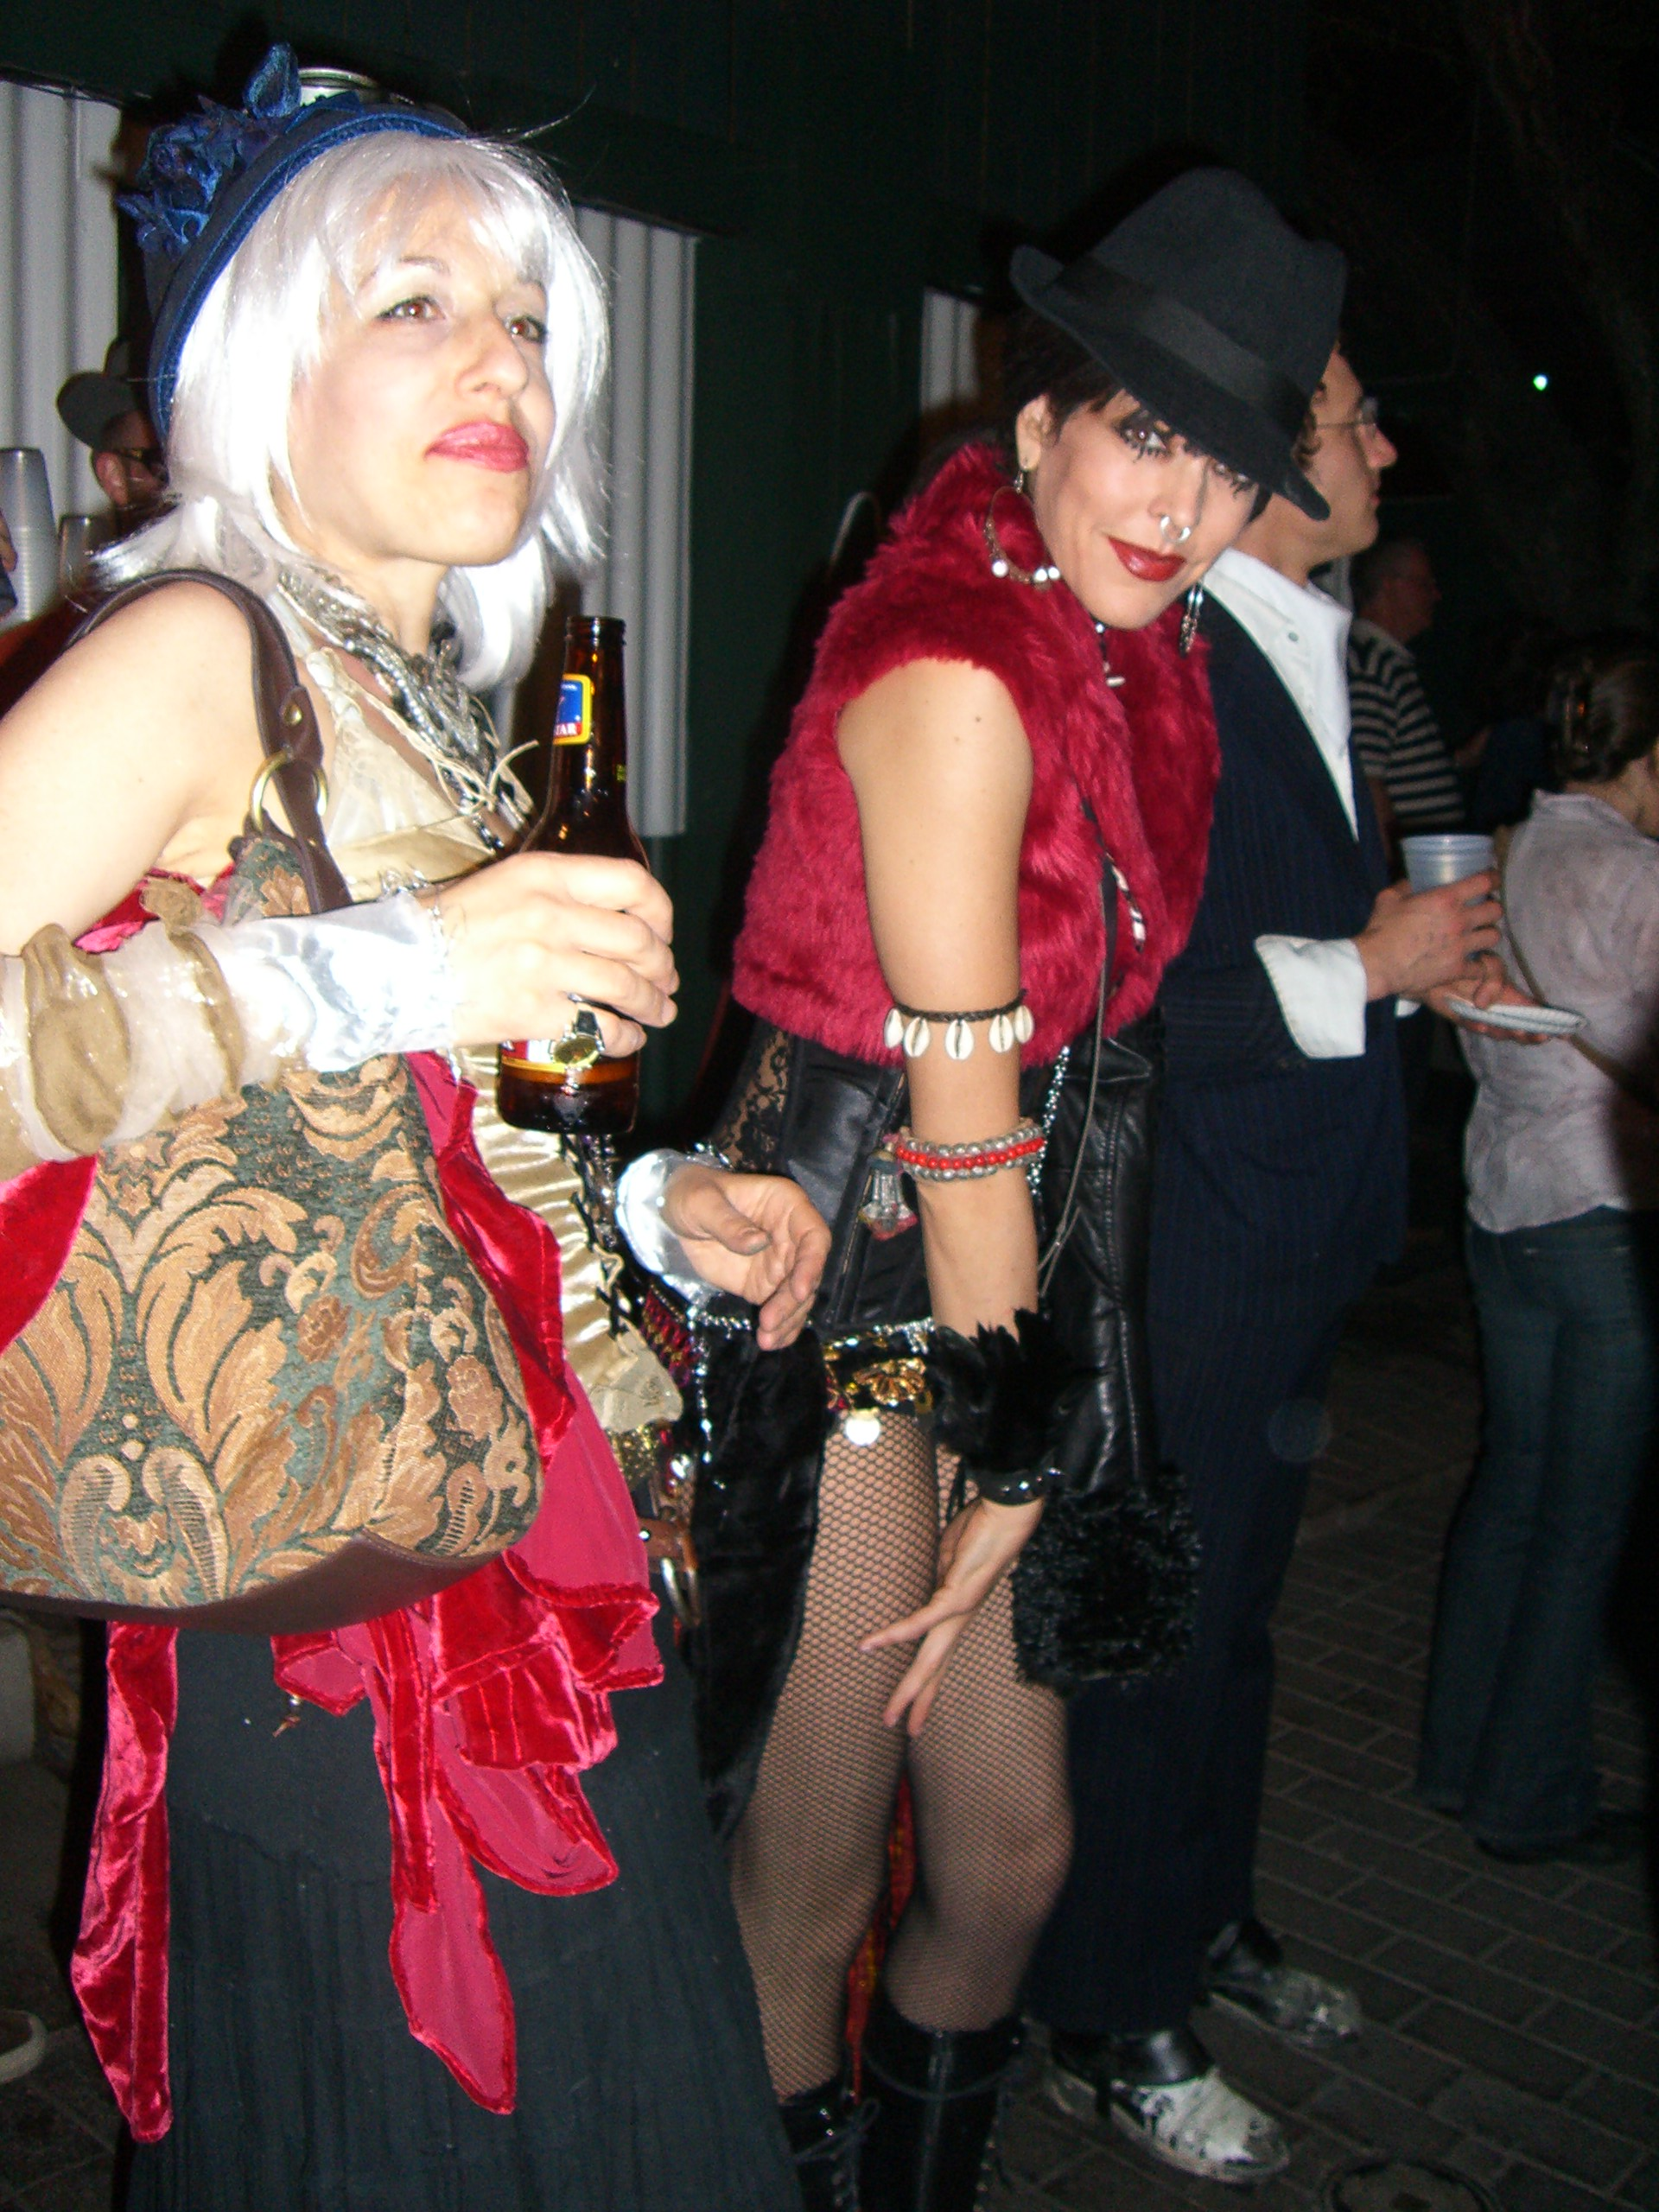 Red-and-black, a bellydancer sash with sequins - Steampunk party at SXSW 2007